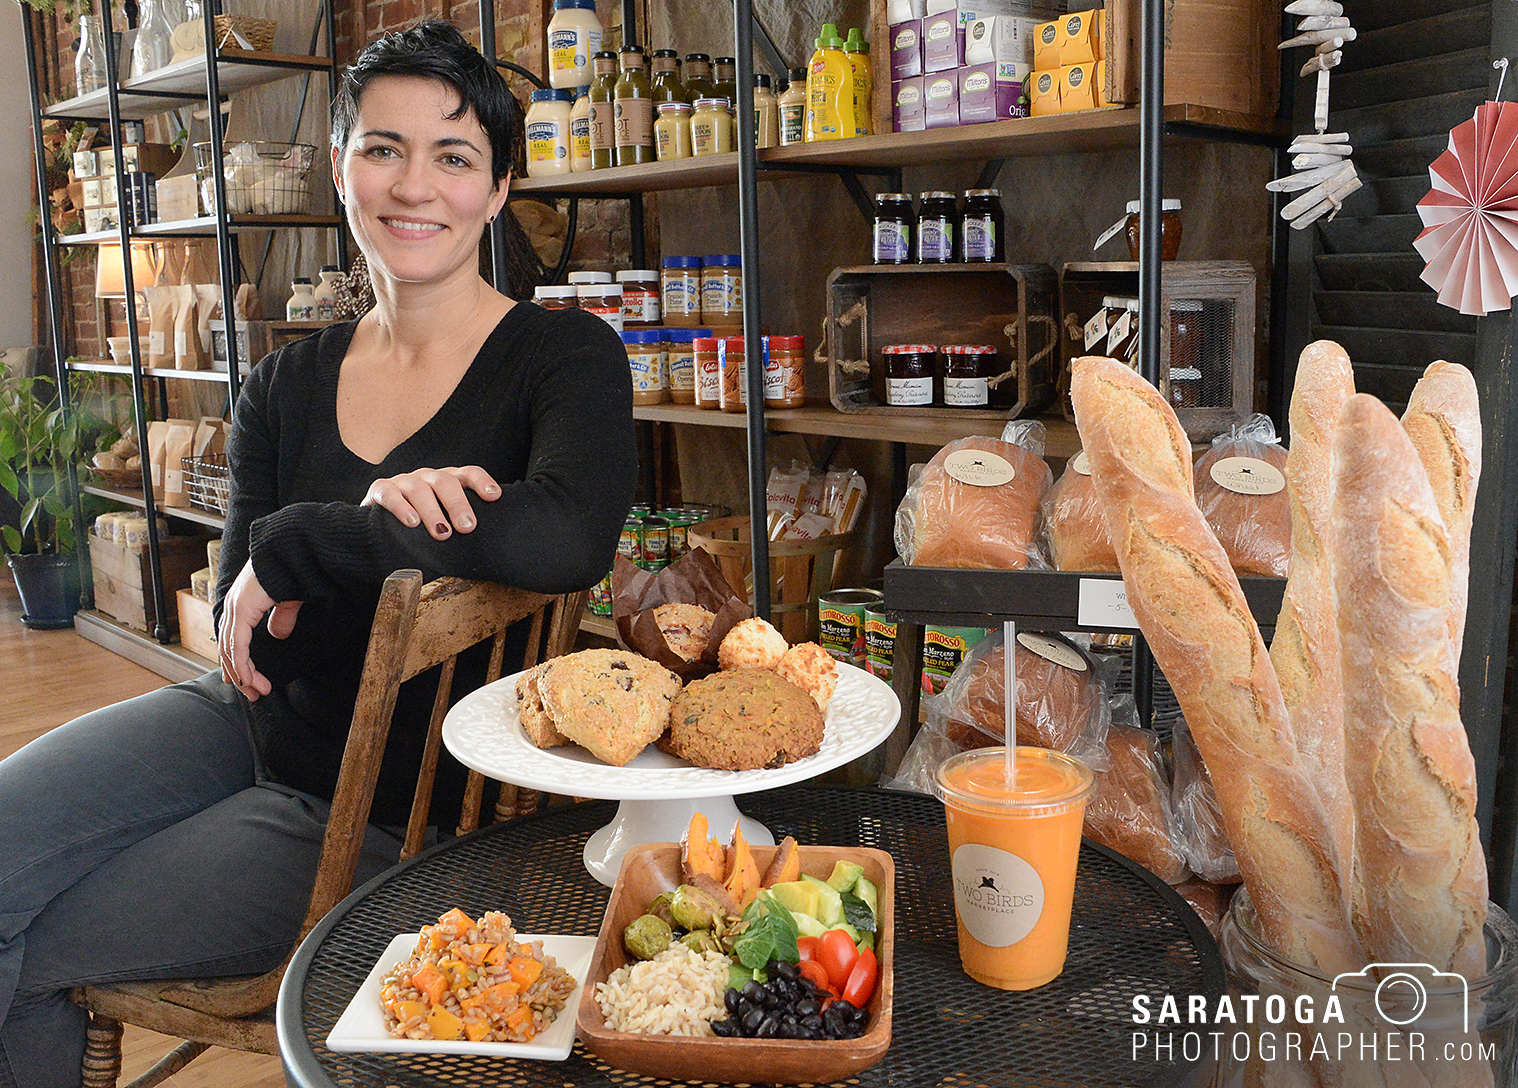 Linnaea DiNallo has opened a new business, Two Birds Marketplace, next door to well-known Iron Roost in Ballston Spa.